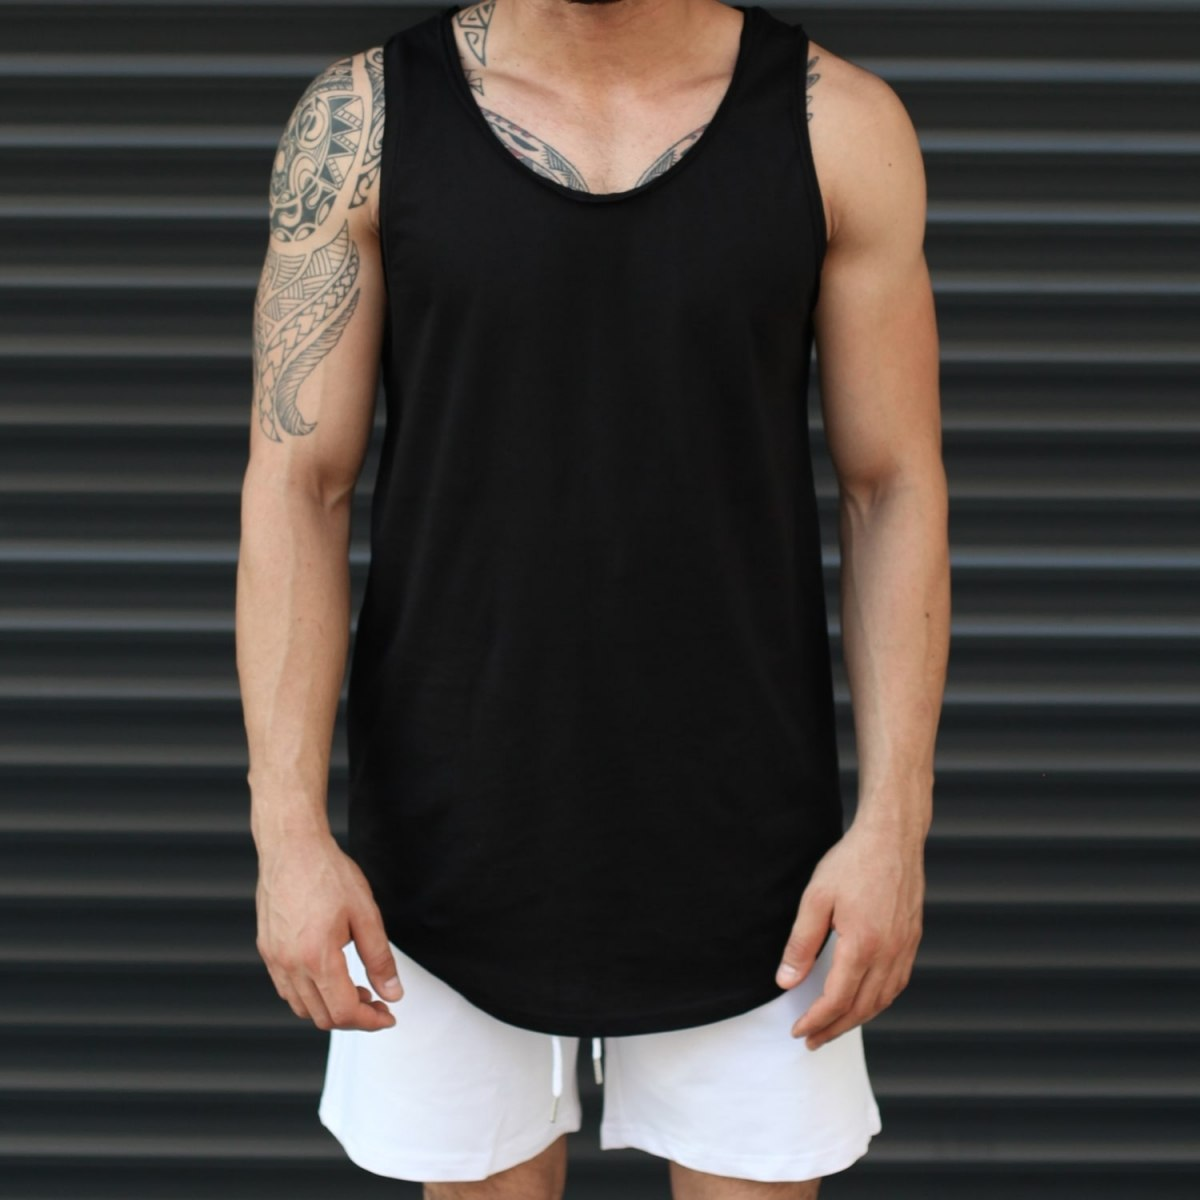 Men's Athletic Sleeveless Longline Tank Top Solid Black